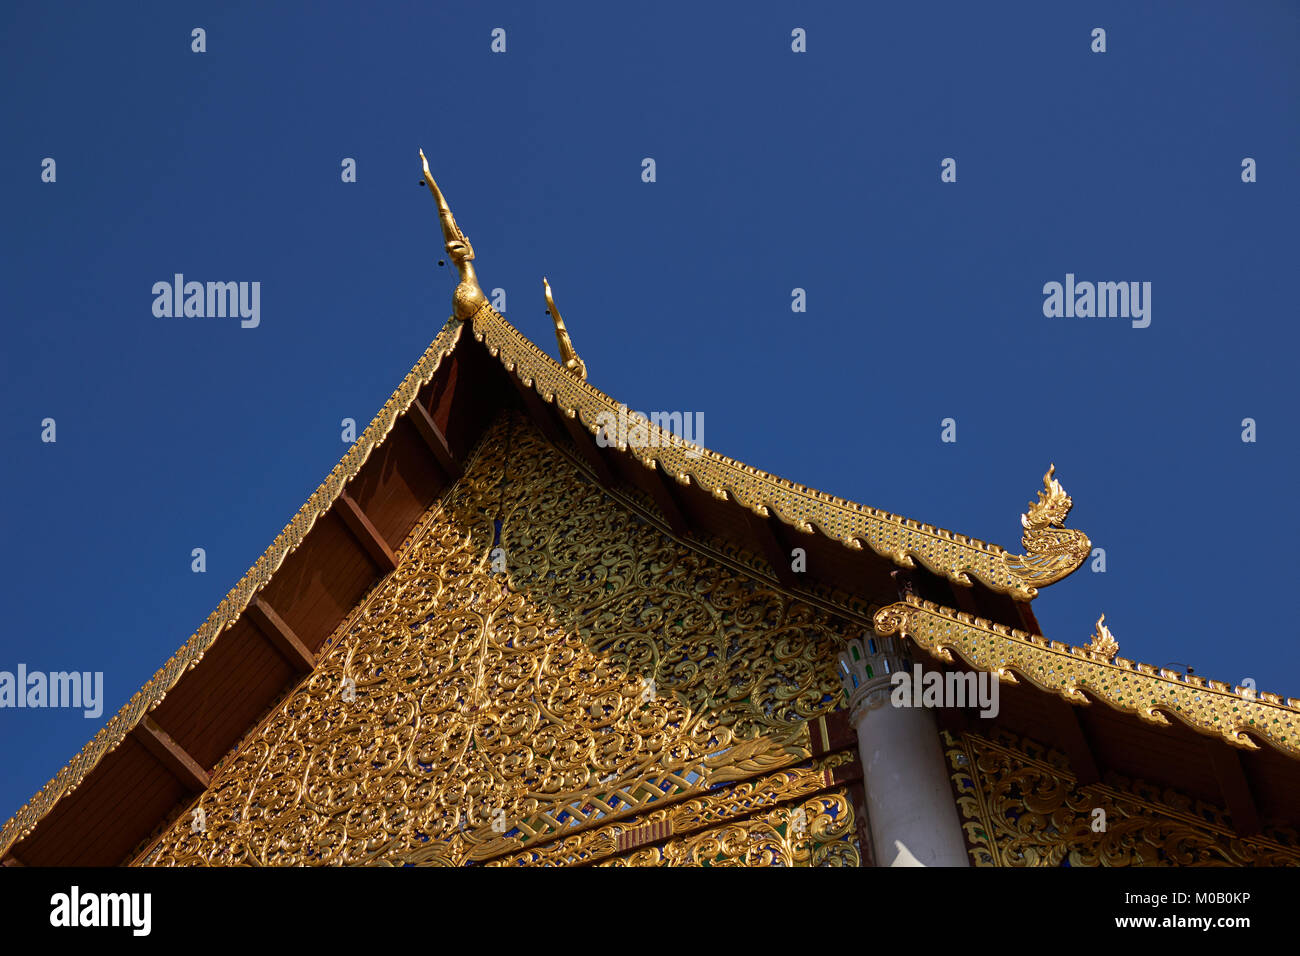 Wat Chedi Luang temple and grounds, Chiang Mai, Thailand - Stock Image